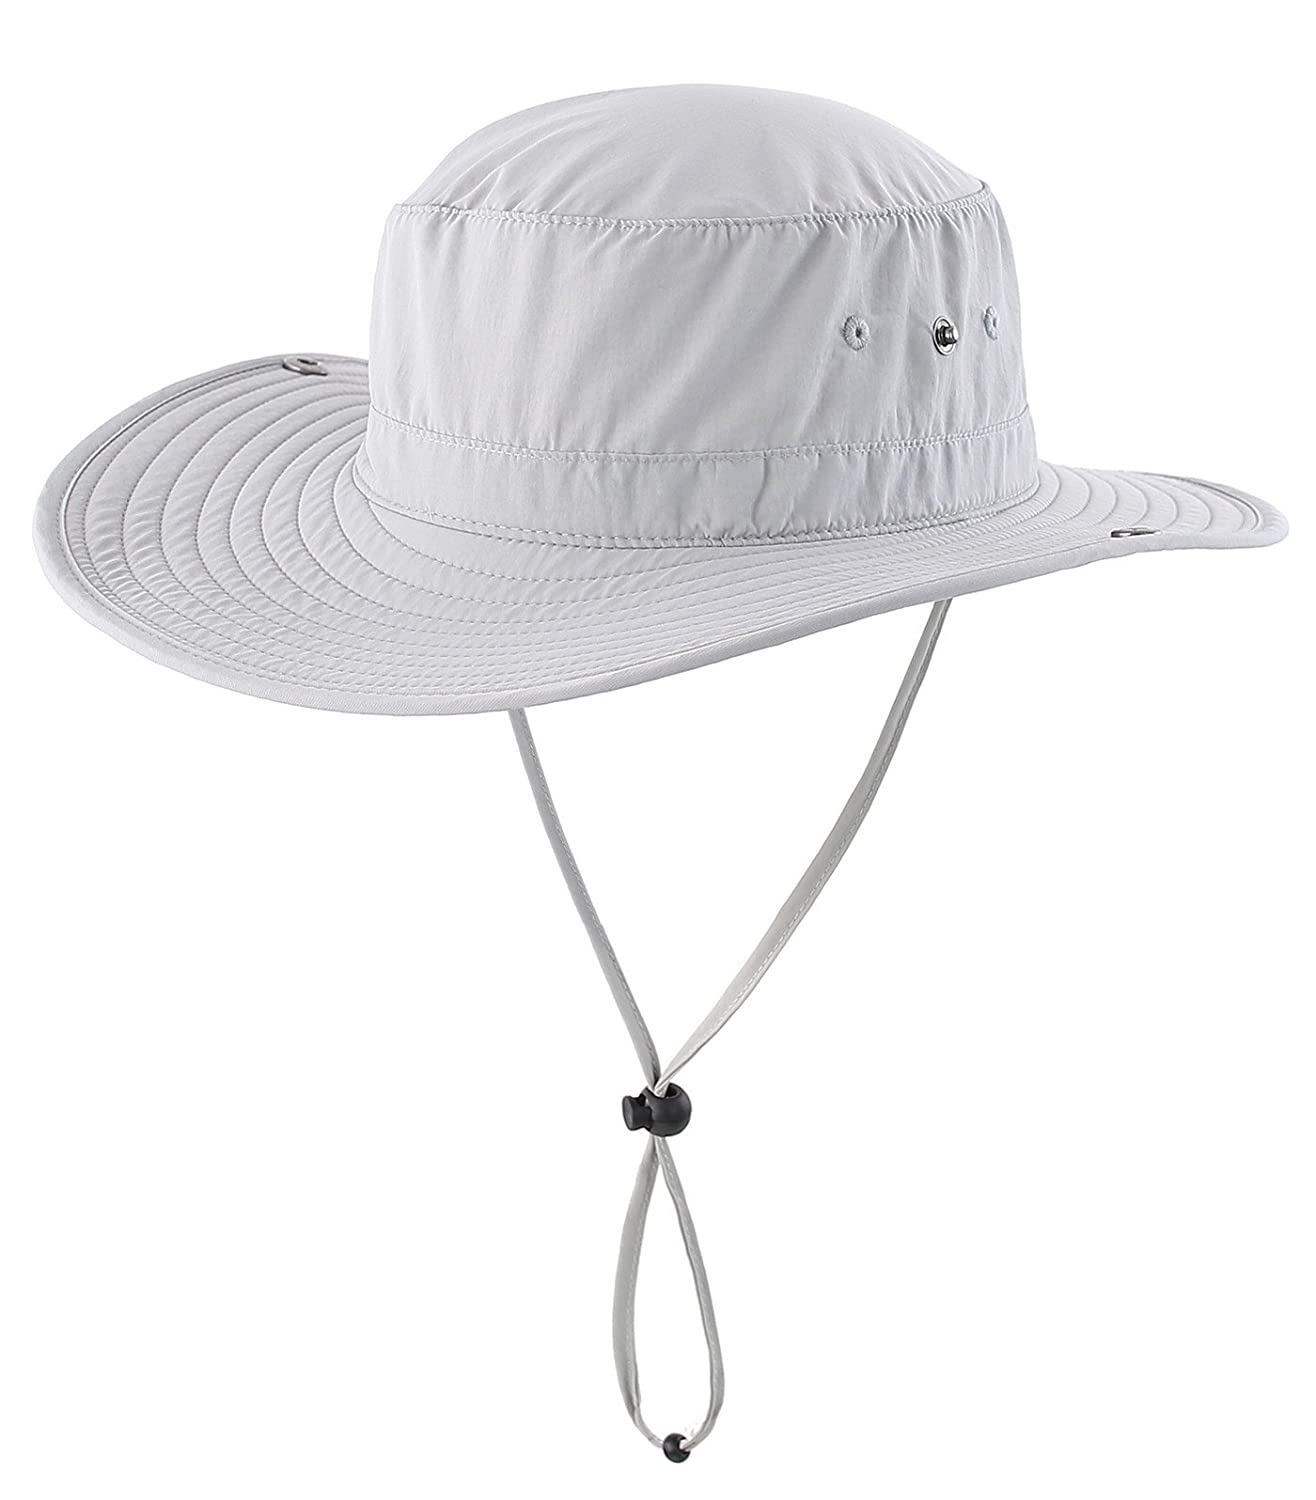 Decentron Mens Outdoor Cowboy Sun Hat Wide Brim Bucket Fishing Hats Summer String Hat